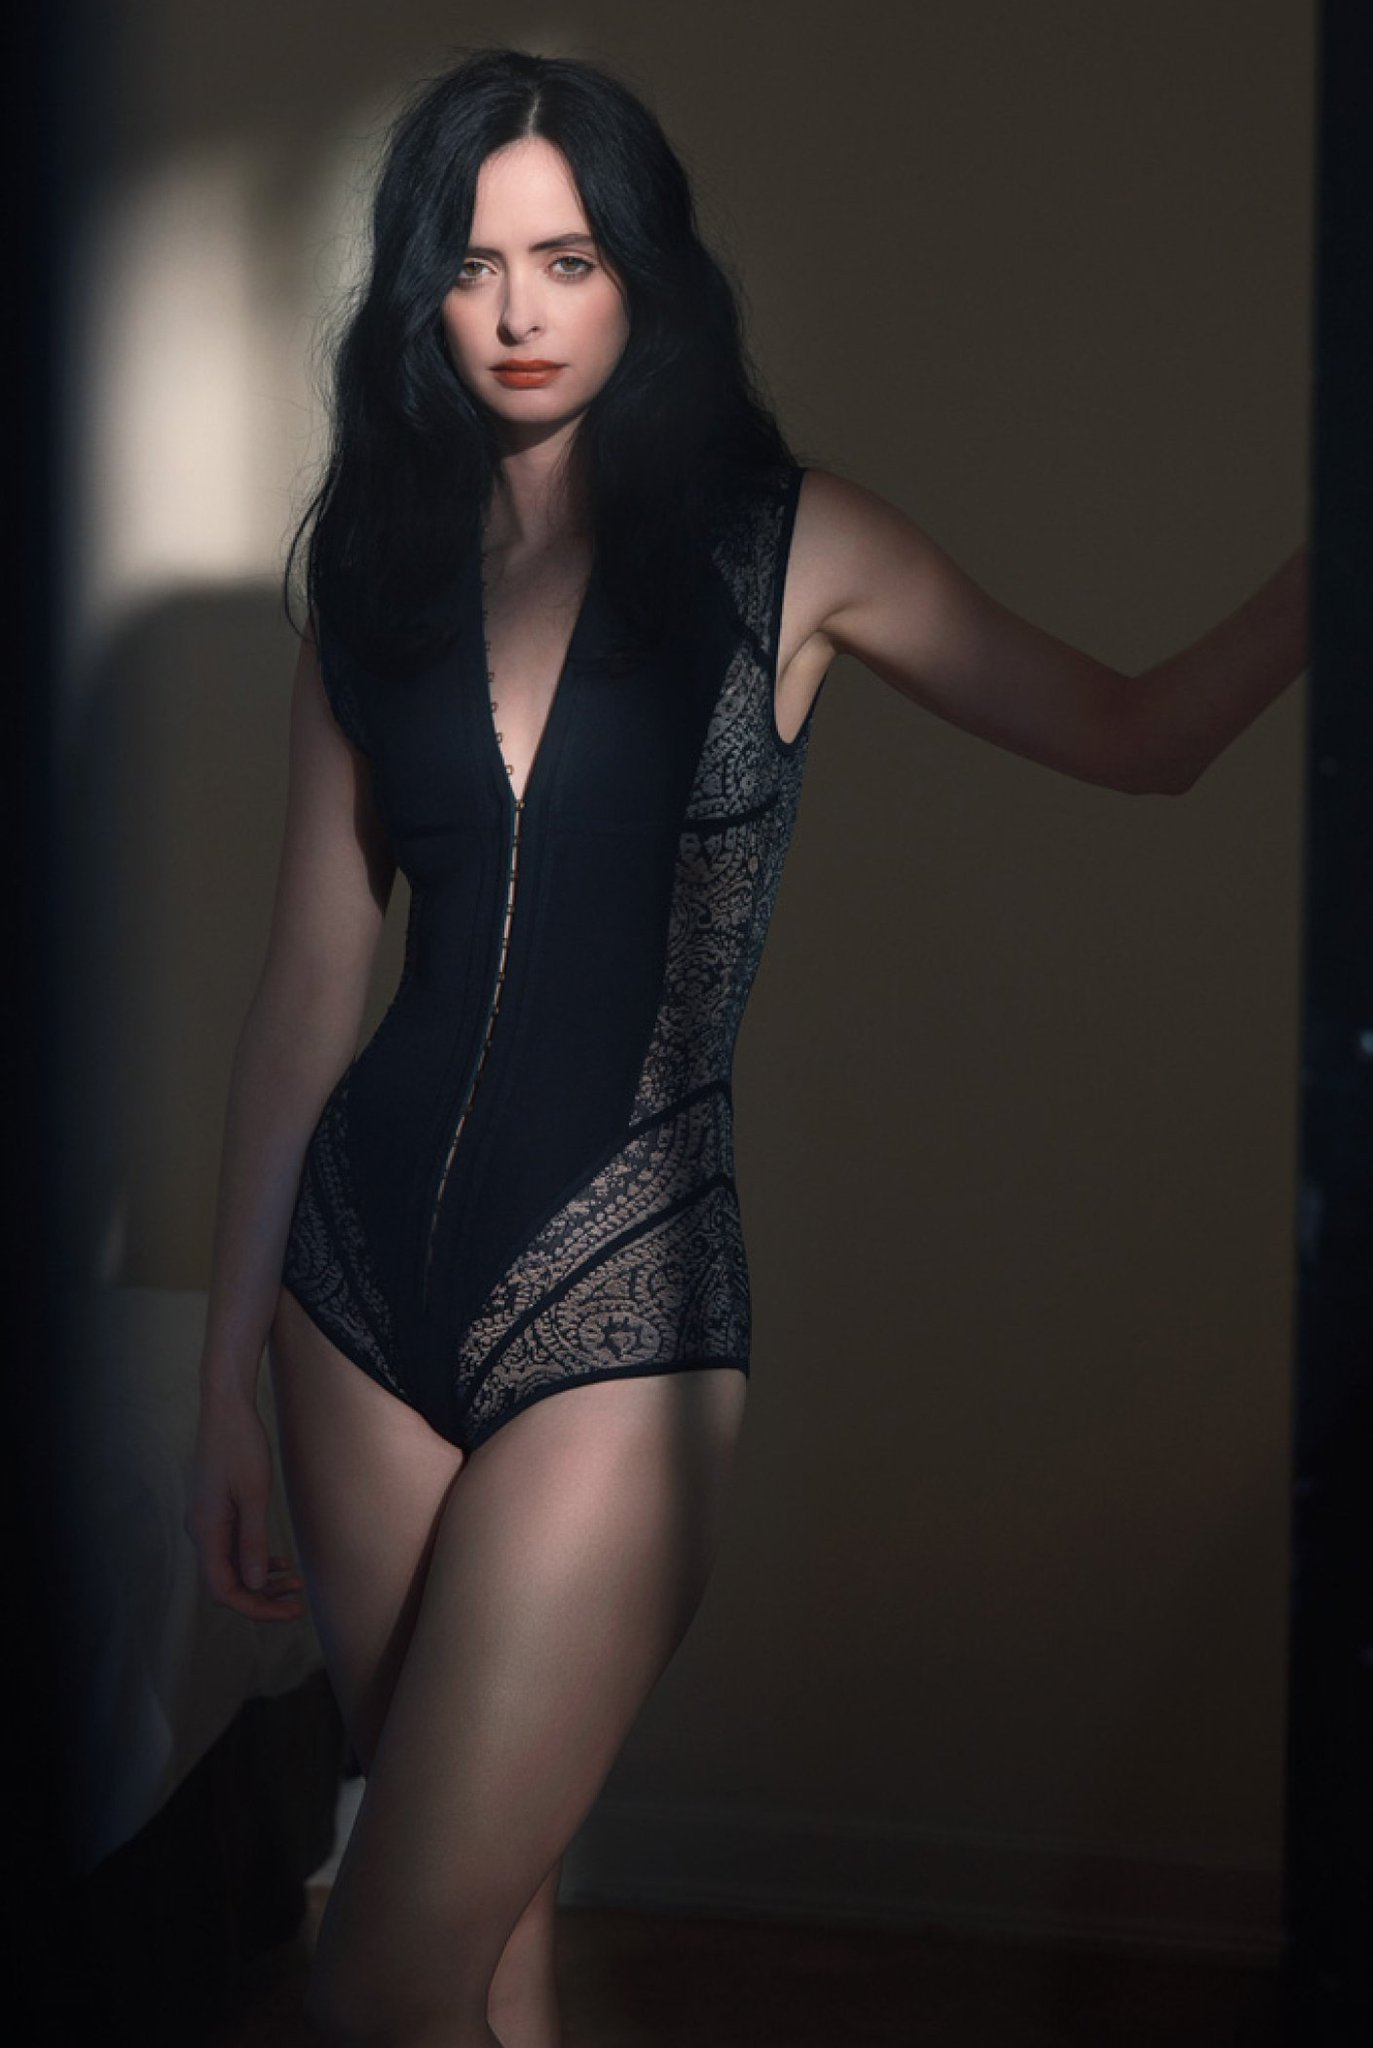 IN BED WITH, @Krystenritter wears a #BALMAINPF16 bodysuit shot by Mona Kuhn for @wmag https://t.co/gBLGbNo3h7